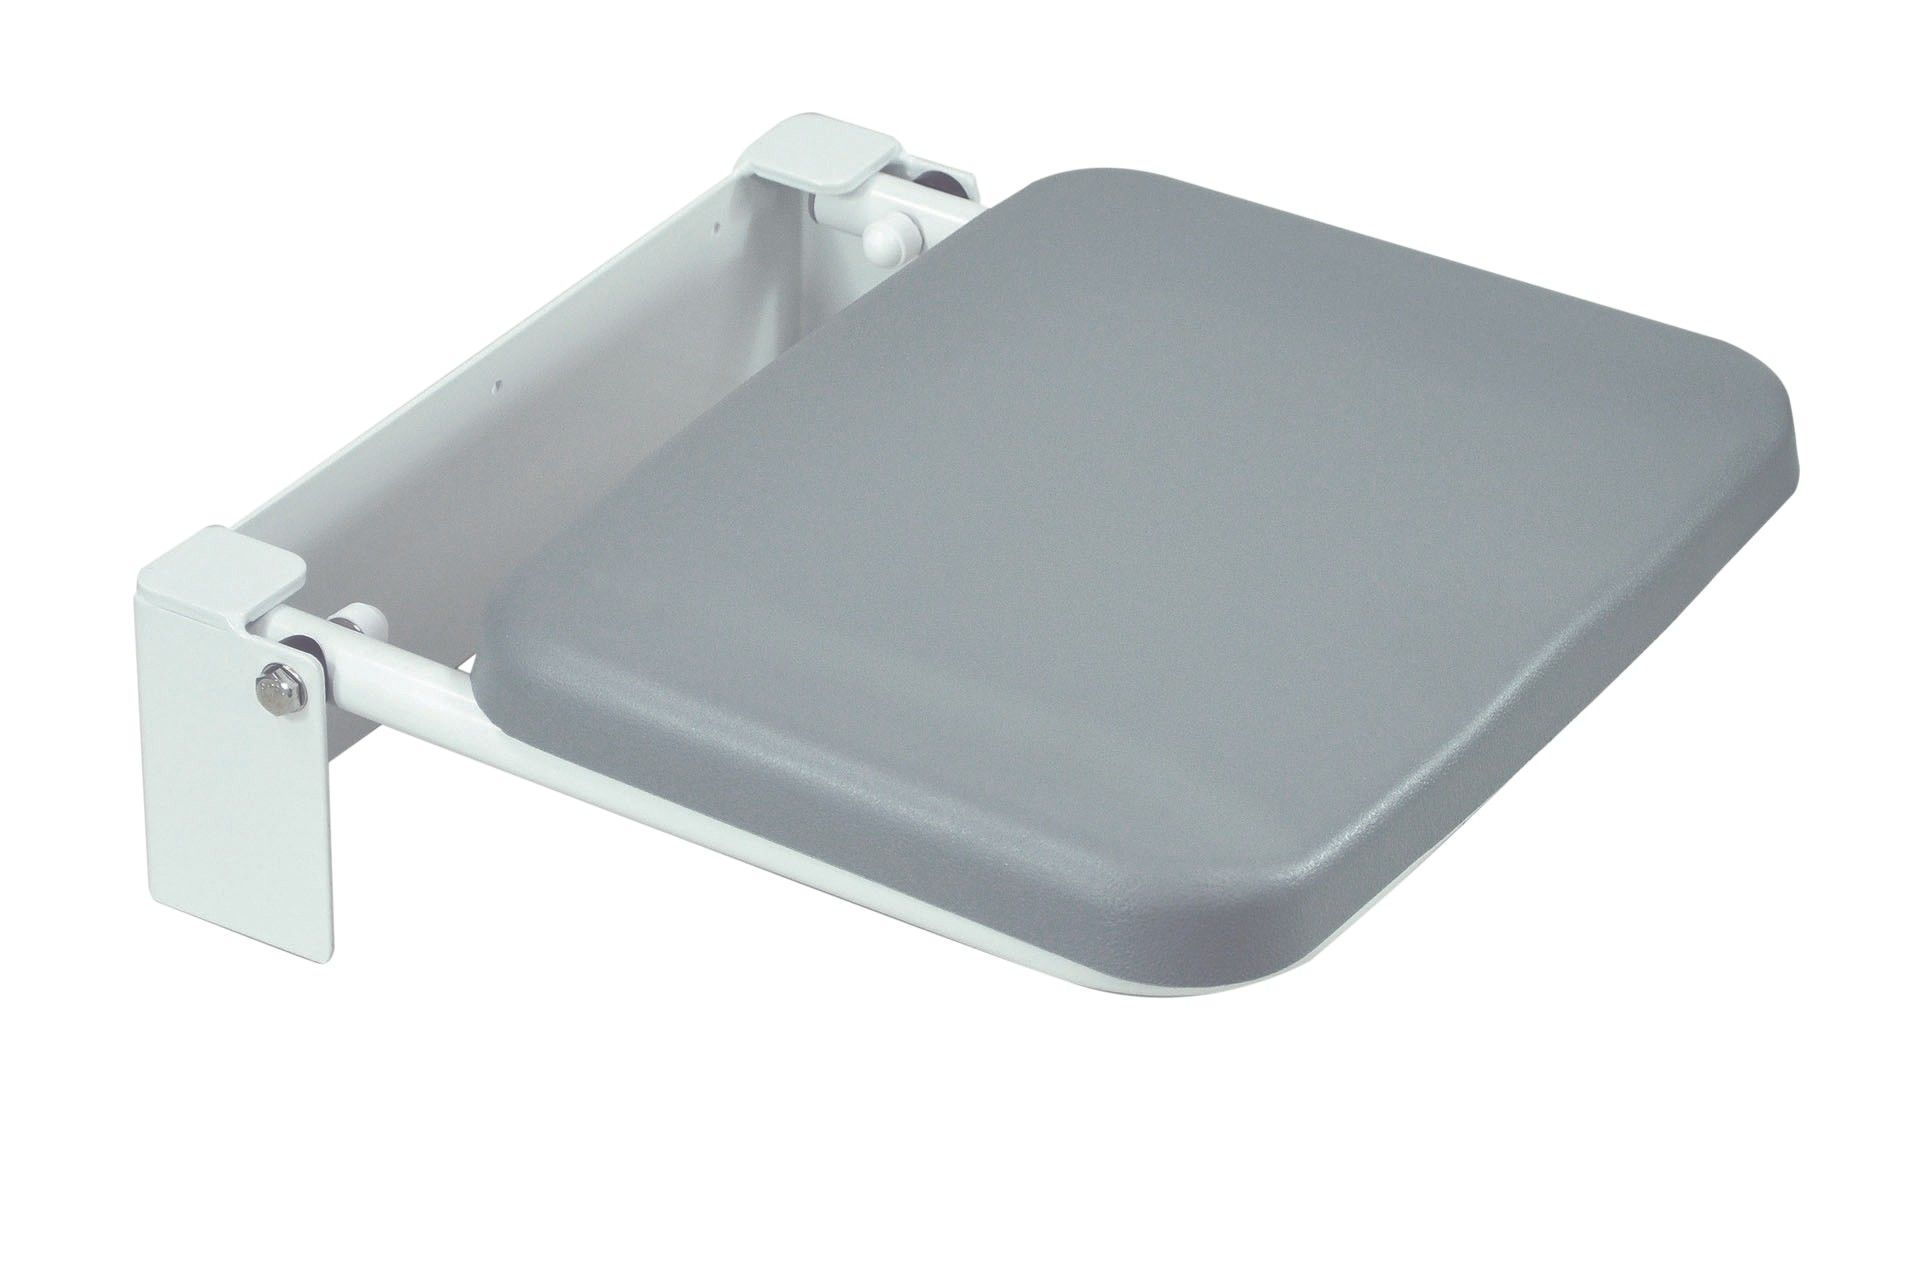 Solo Compact Padded Wall Mounted Shower Seat Overall depth 38mm ...